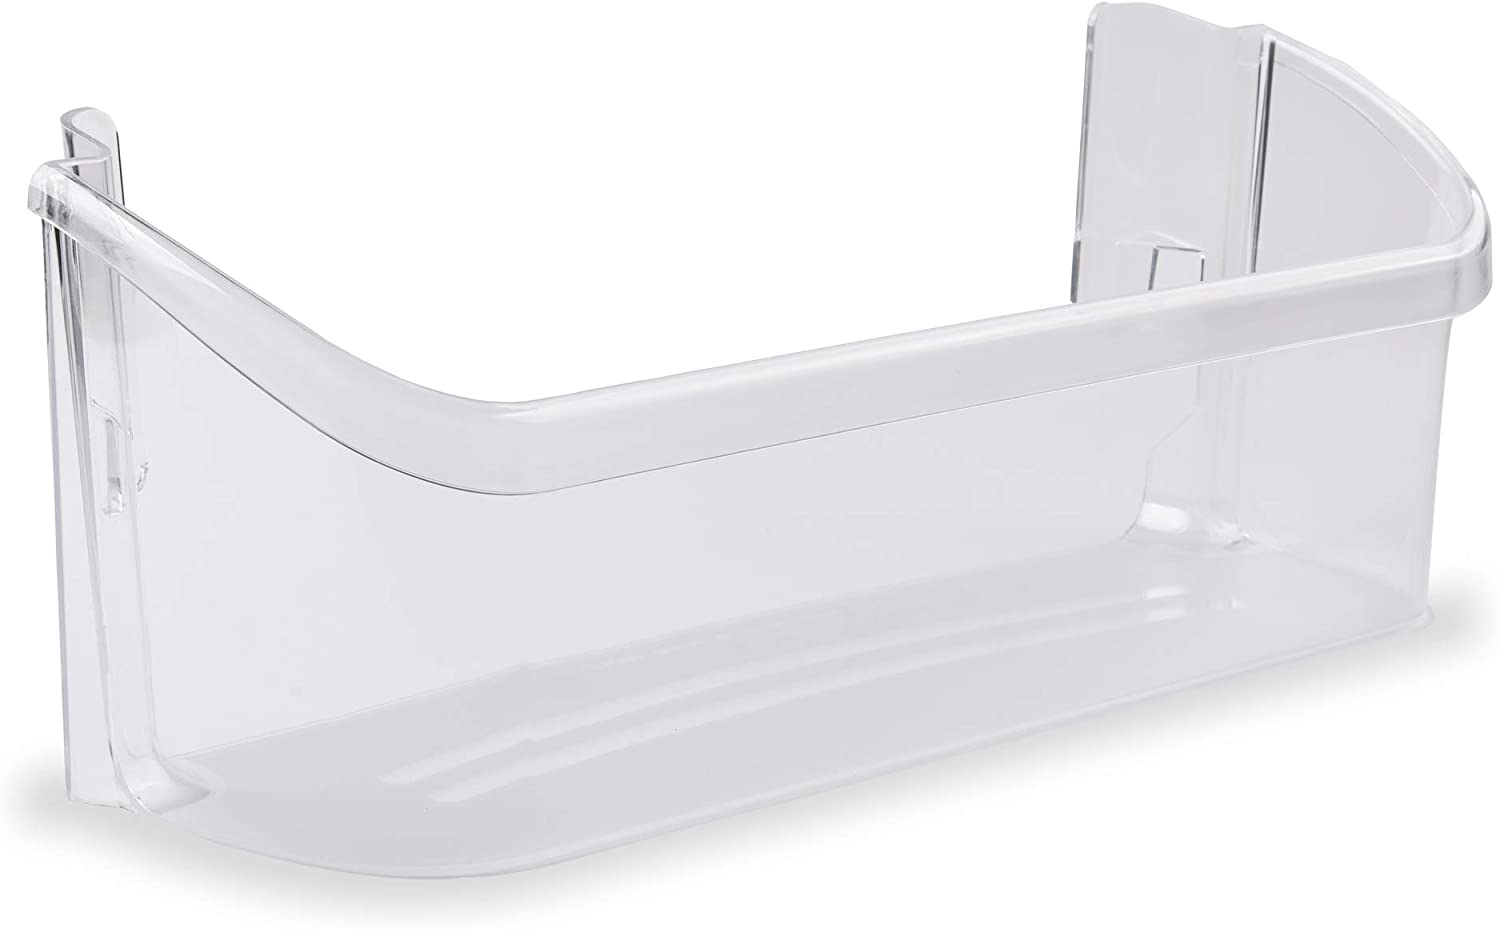 Appliance Pros AP-240323002 Refrigerator, Door Shelf Bin, Shelves, Refrigerator Shelving Parts. Replacement Part for 240323002, Bottom Rack, Compatible With Leading Brands and Models